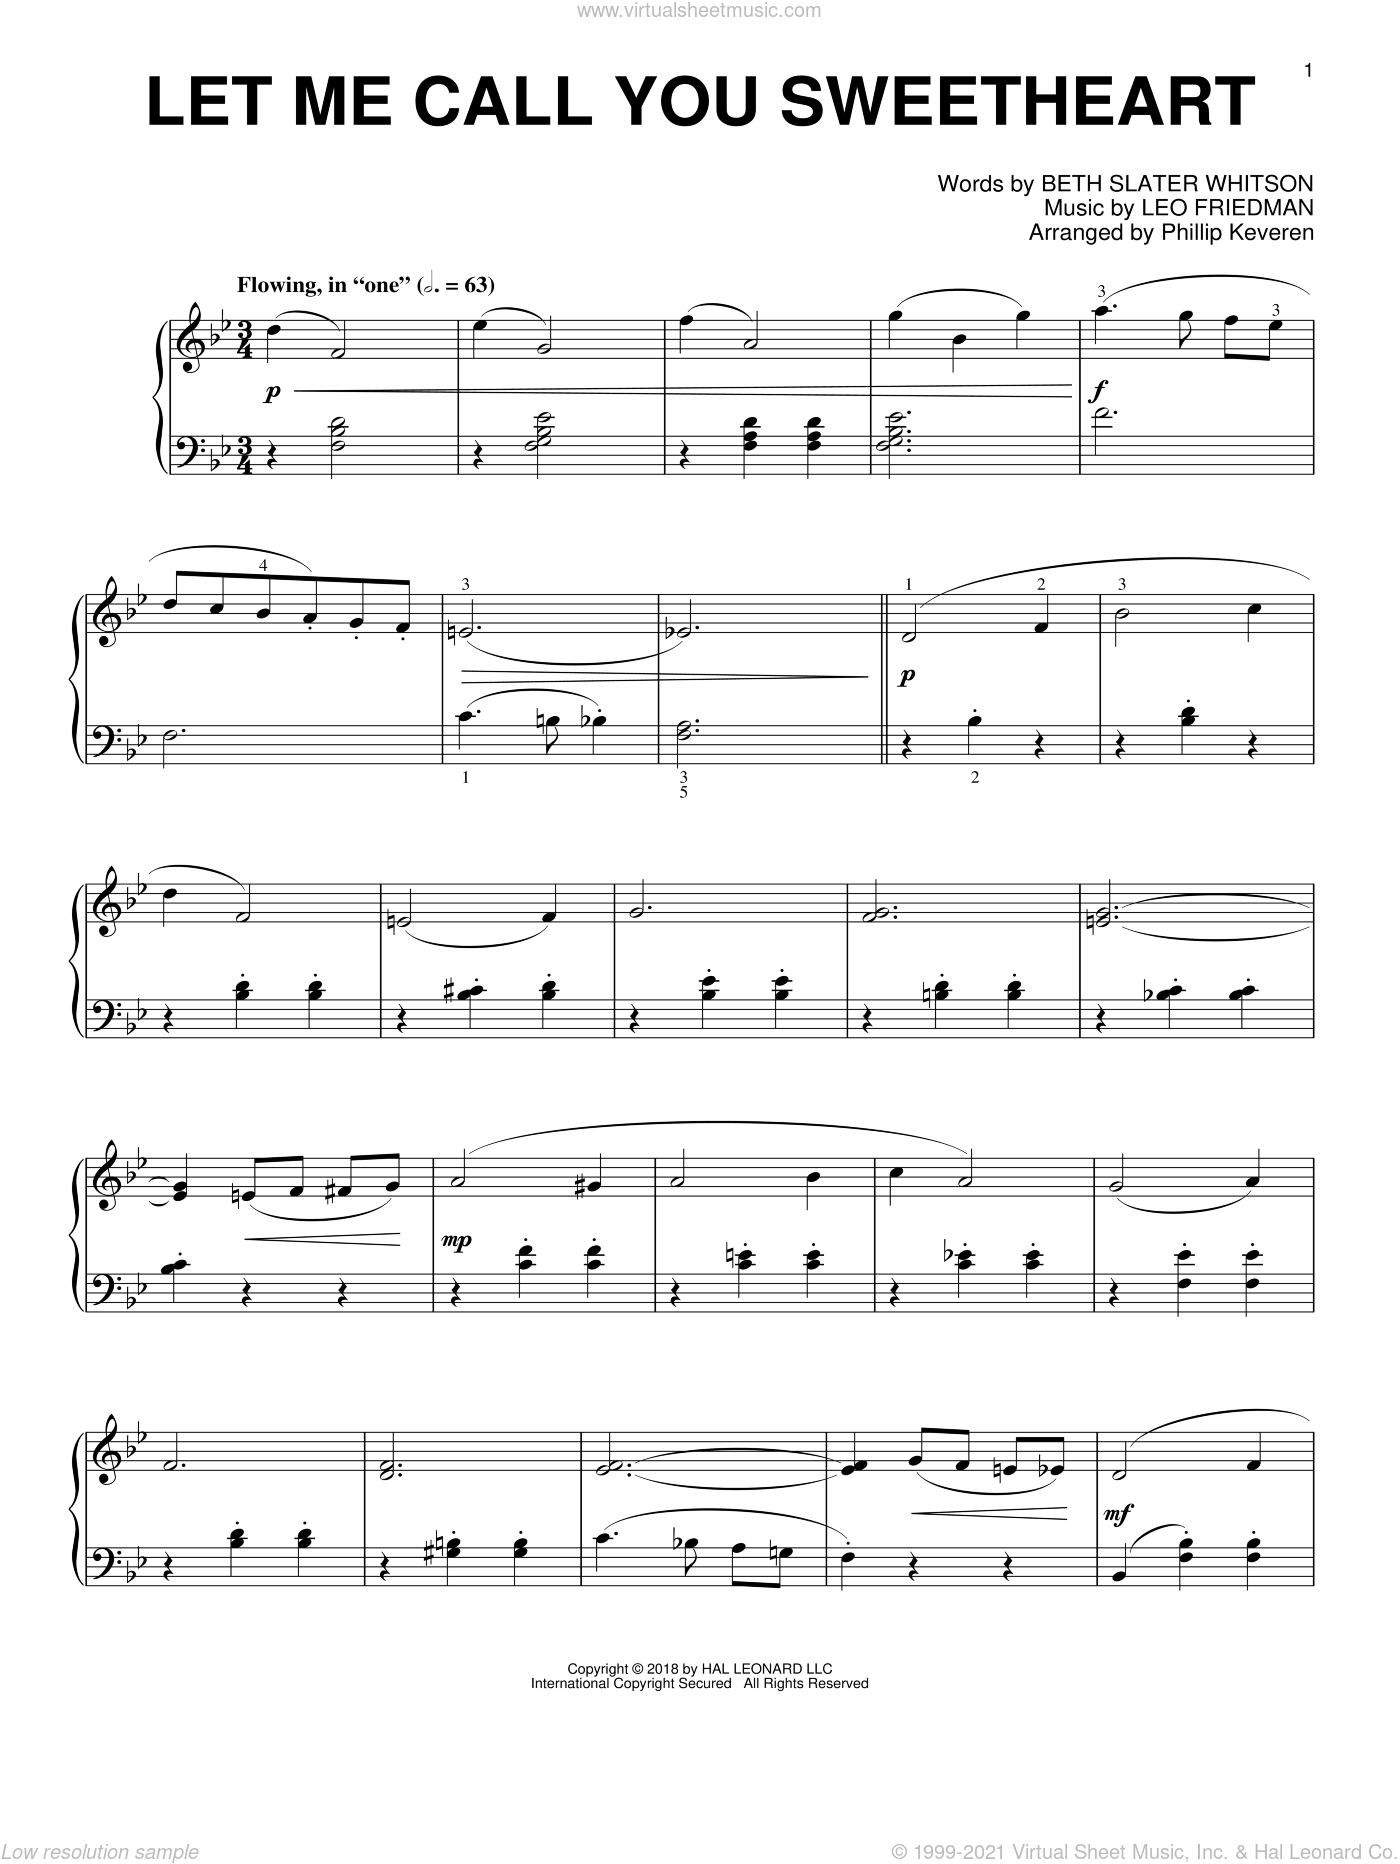 Let Me Call You Sweetheart [Jazz version] (arr. Phillip Keveren) sheet music for piano solo by Leo Friedman, Phillip Keveren and Beth Slater Whitson, intermediate skill level